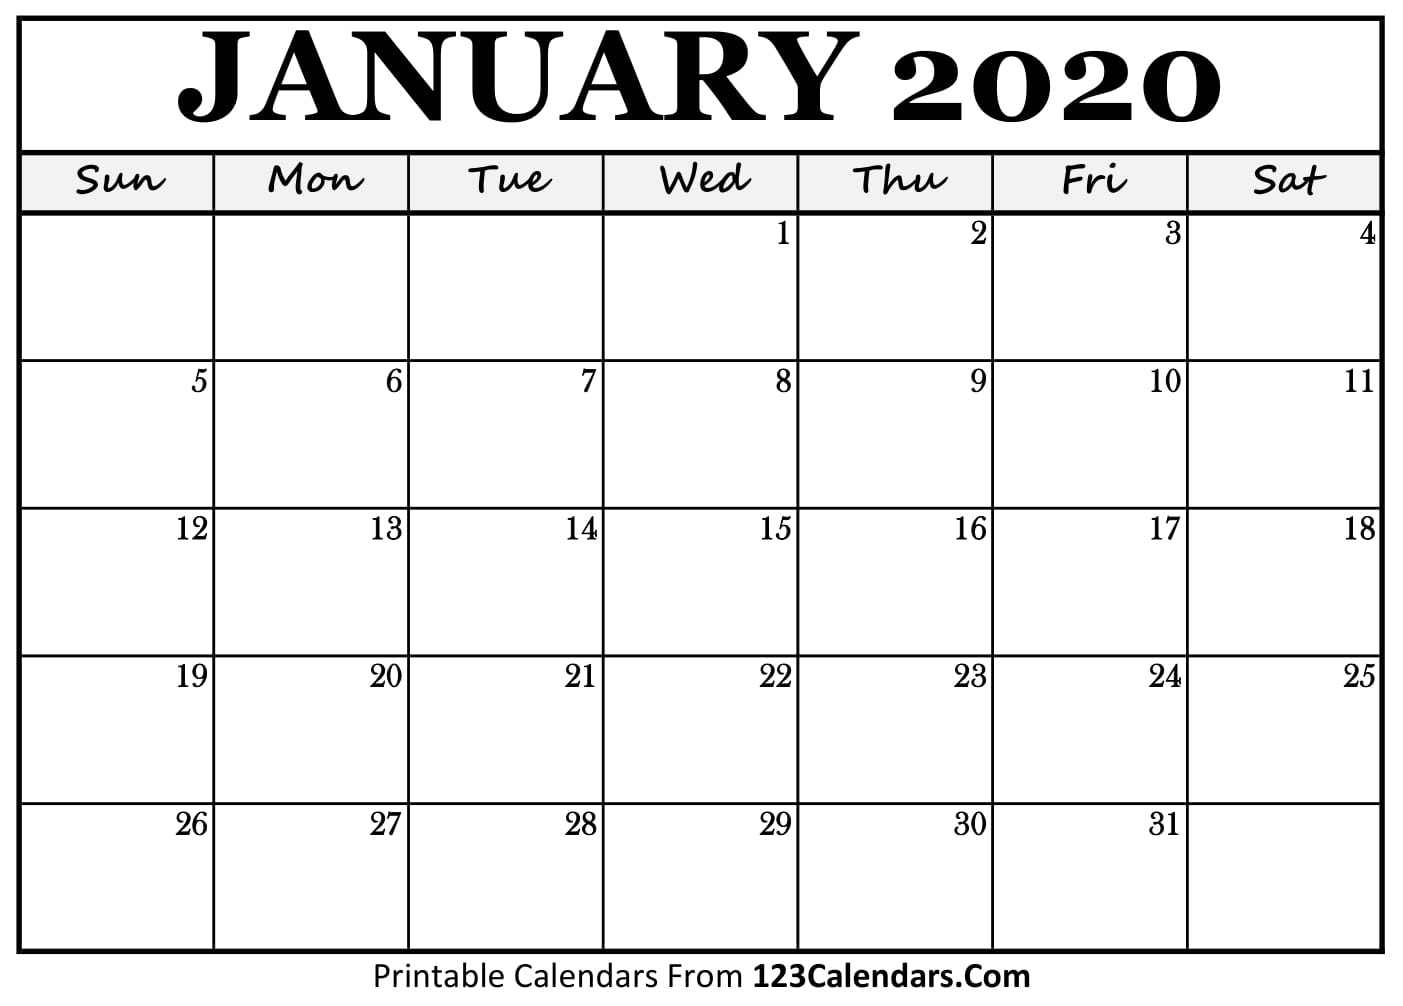 Free Printable Calendar | 123Calendars inside Blank Calander 2020 Fill In